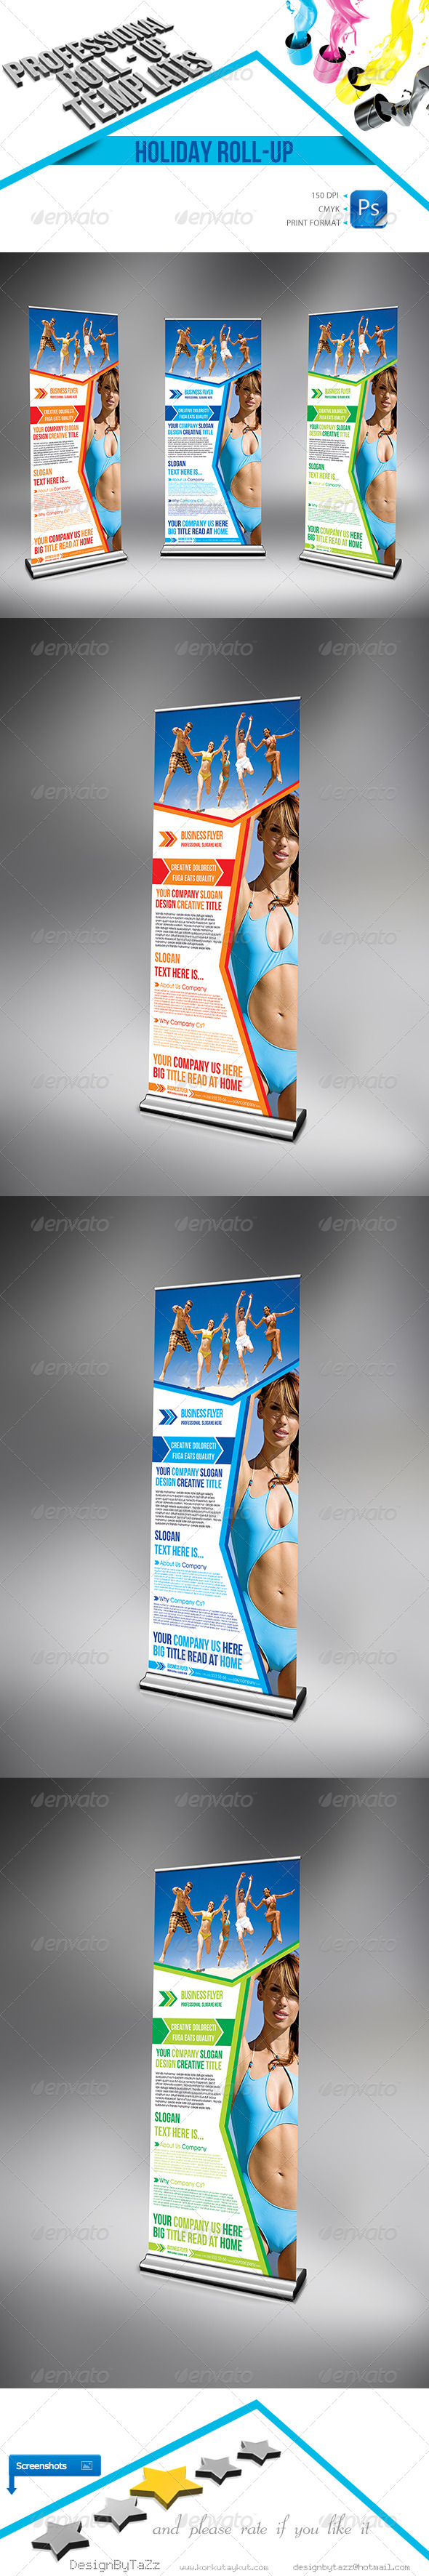 Holiday Business Roll-Up - Signage Print Templates